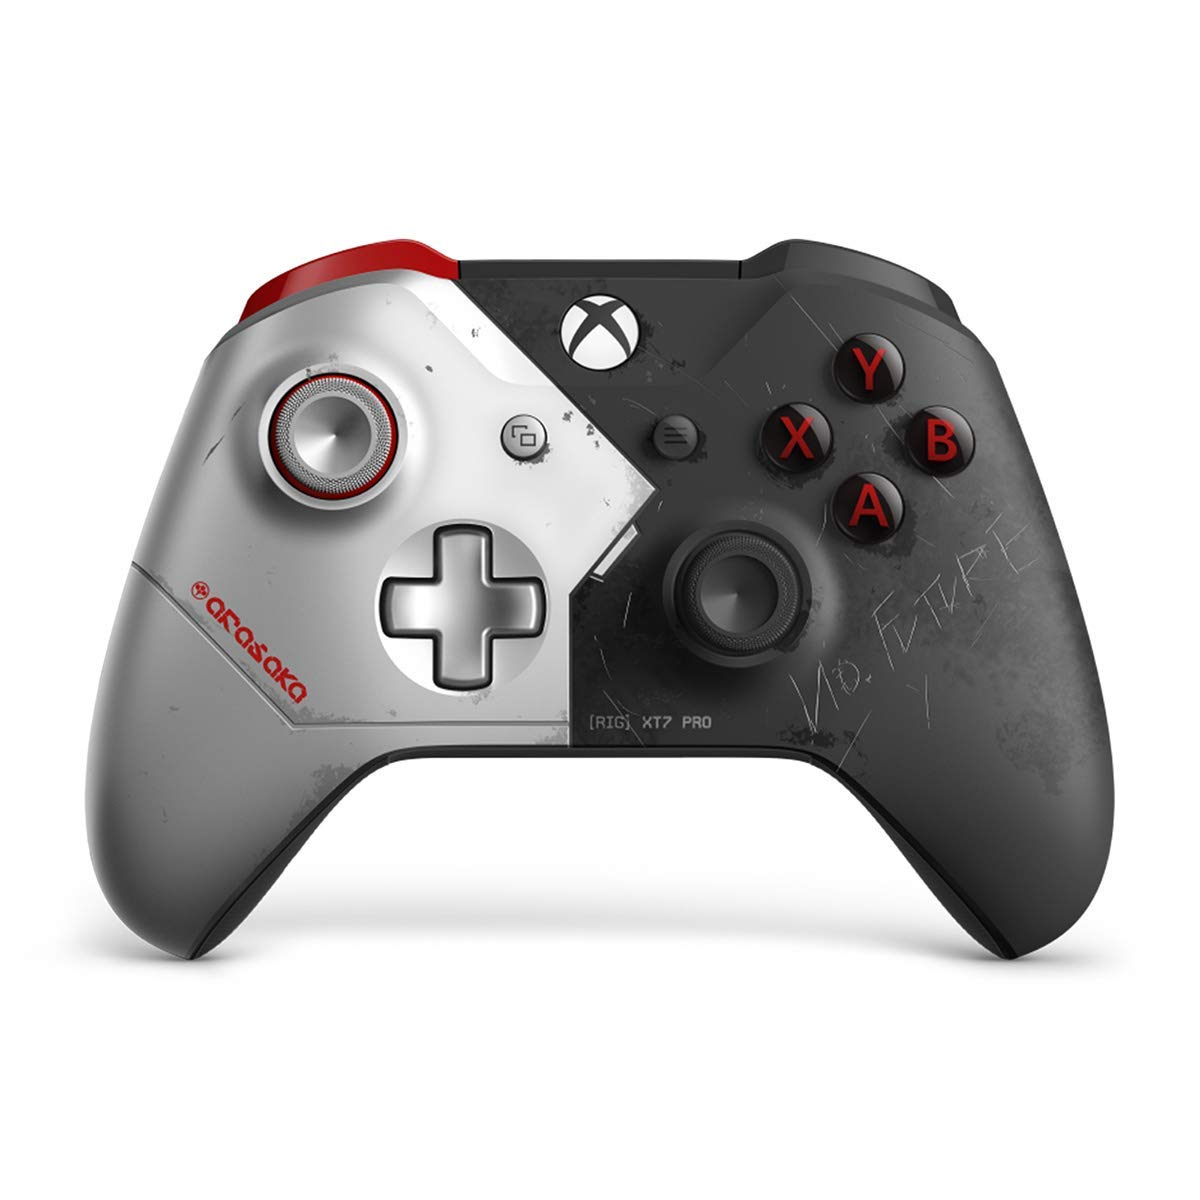 Cyberpunk 2077 Limited Edition Xbox Wireless Controller